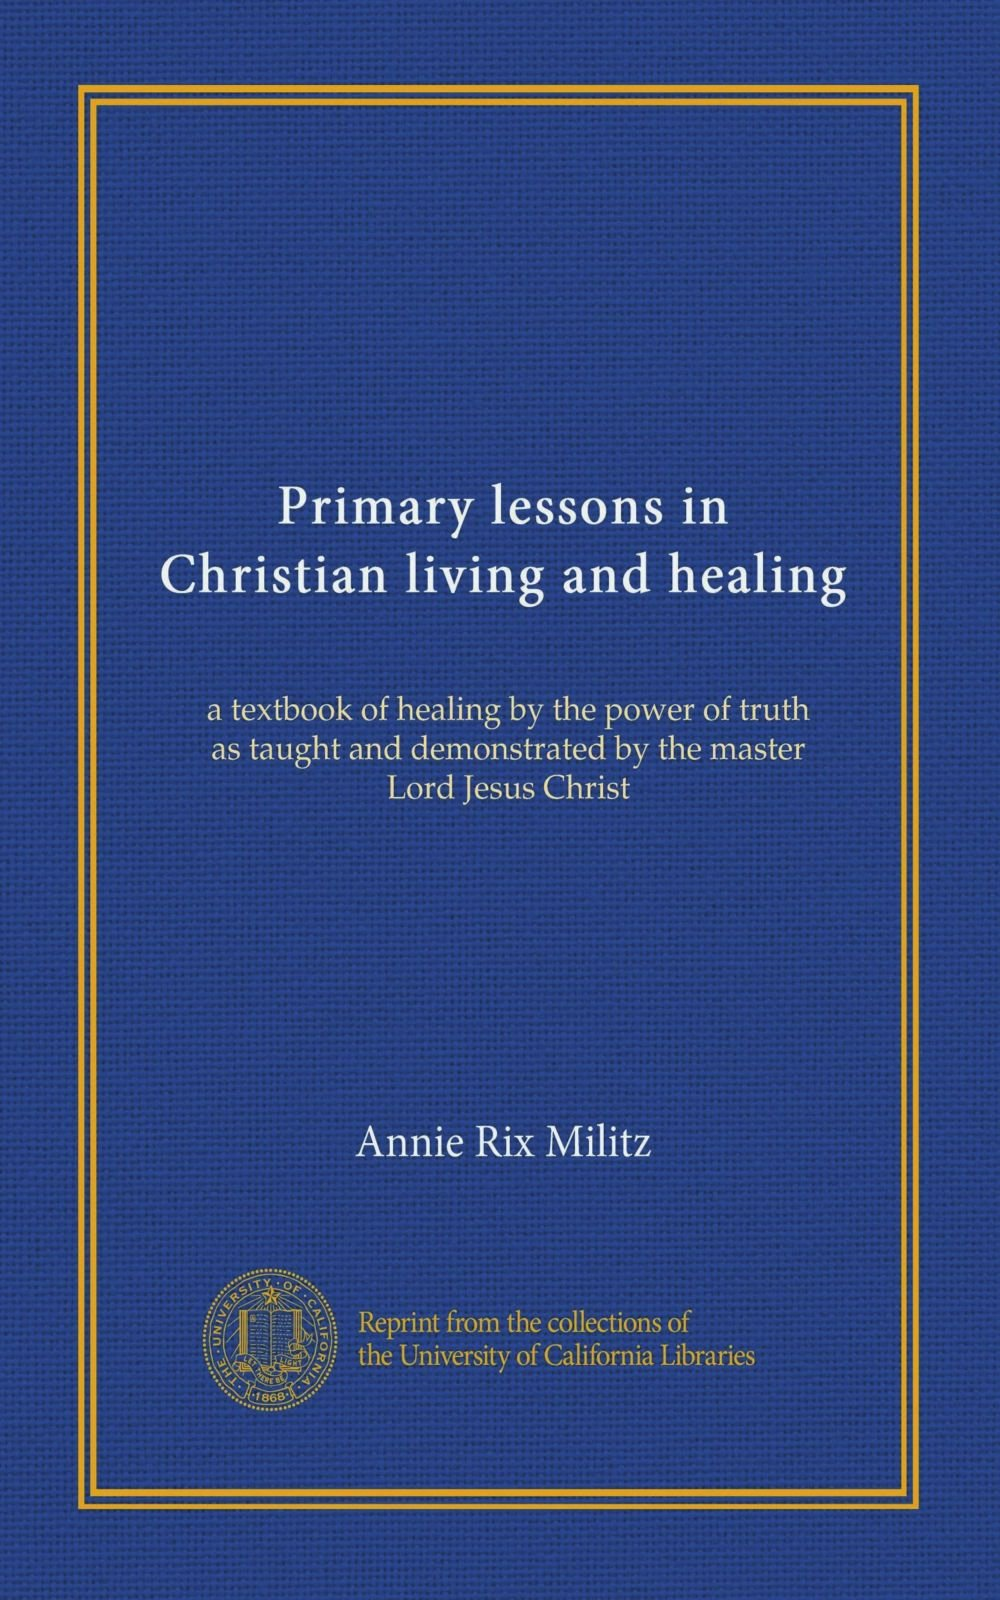 Primary lessons in Christian living and healing: a textbook of healing by the power of truth as taught and demonstrated by the master Lord Jesus Christ ebook